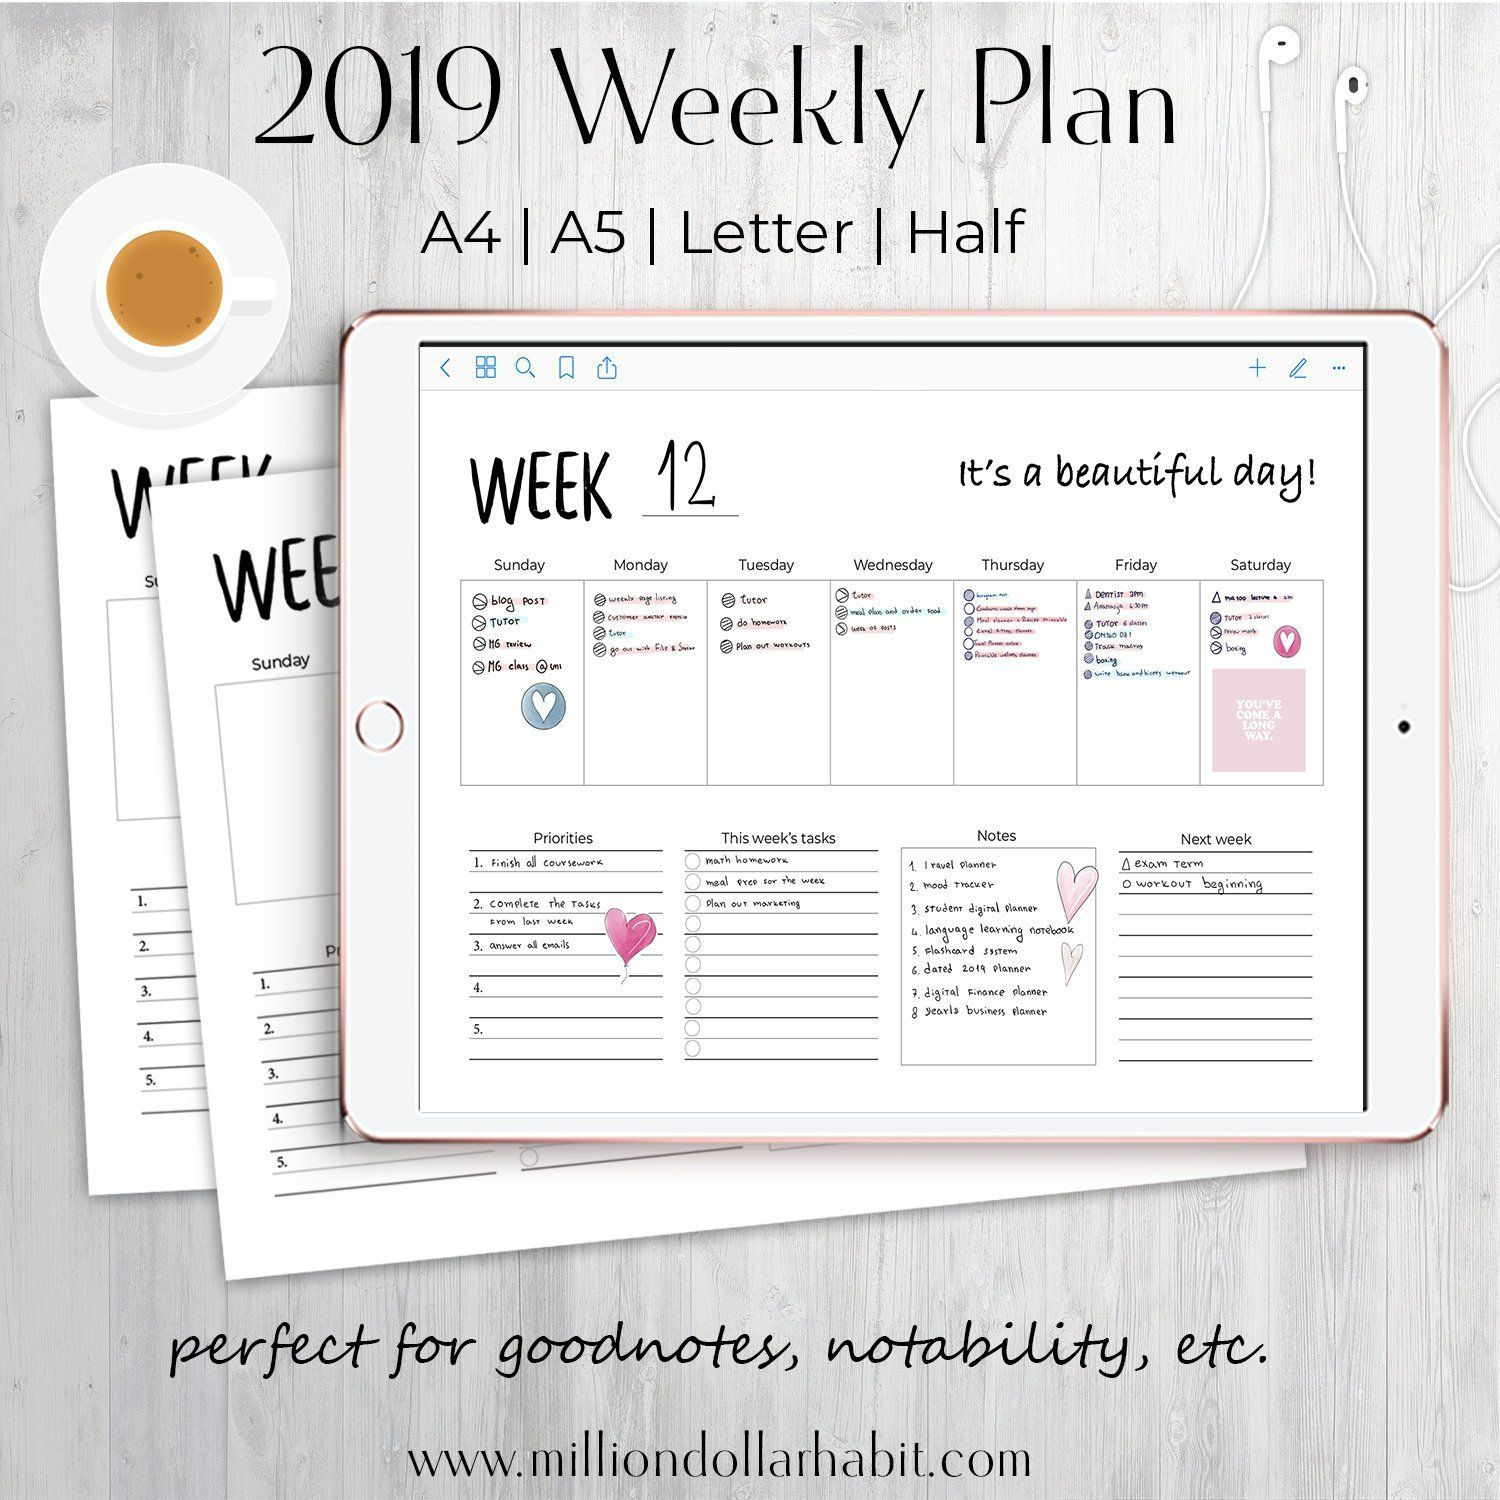 Weekly Planner 2019 Weekly Planner Weekly Planner Insert Weekly